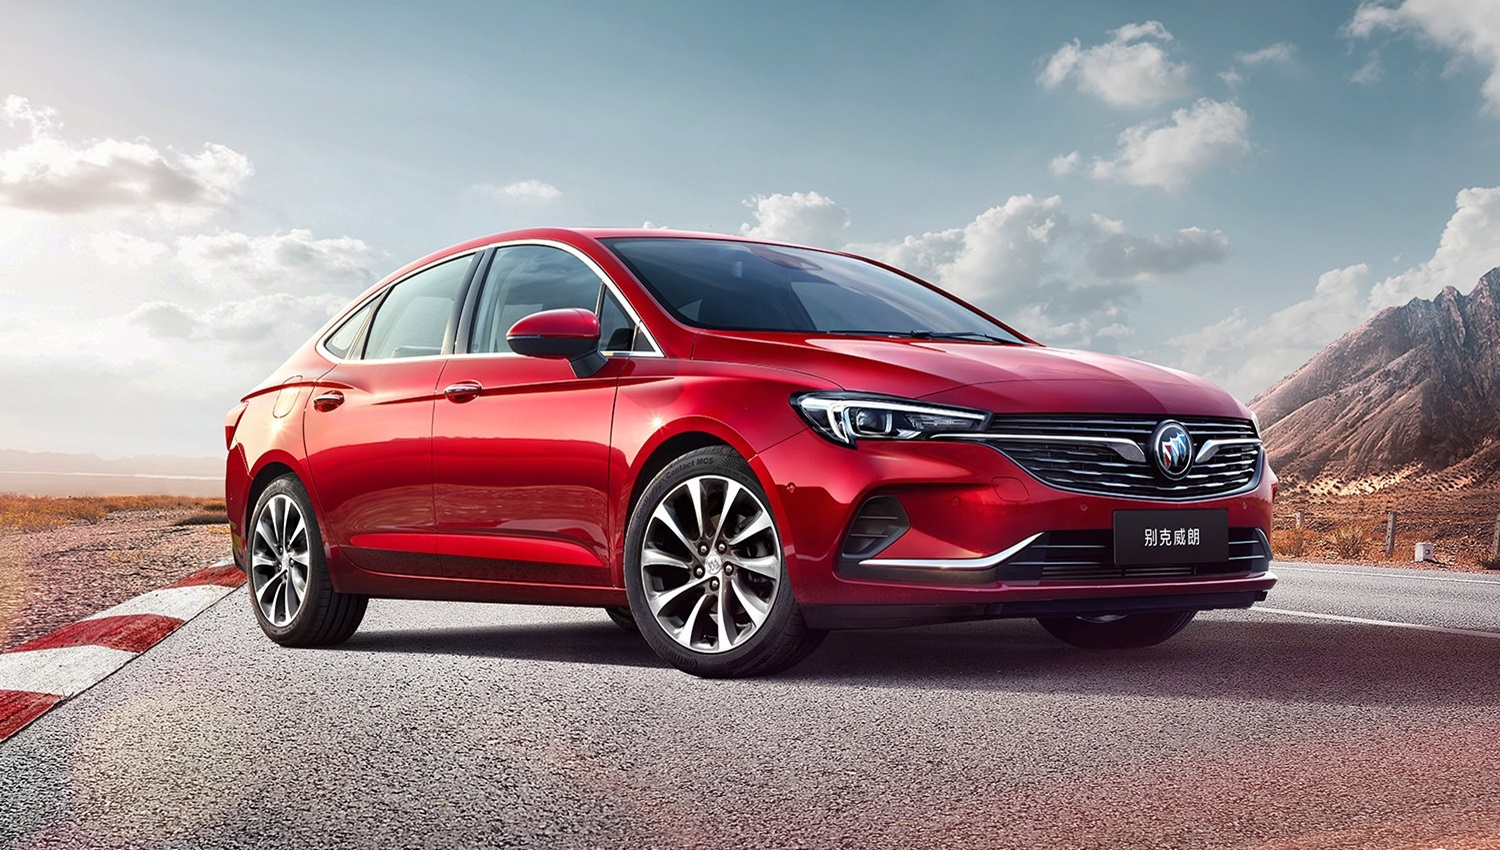 Gm Launches 2020 Buick Verano Refresh In China | Gm Authority New 2022 Buick Verano Inside, Hp, Issues